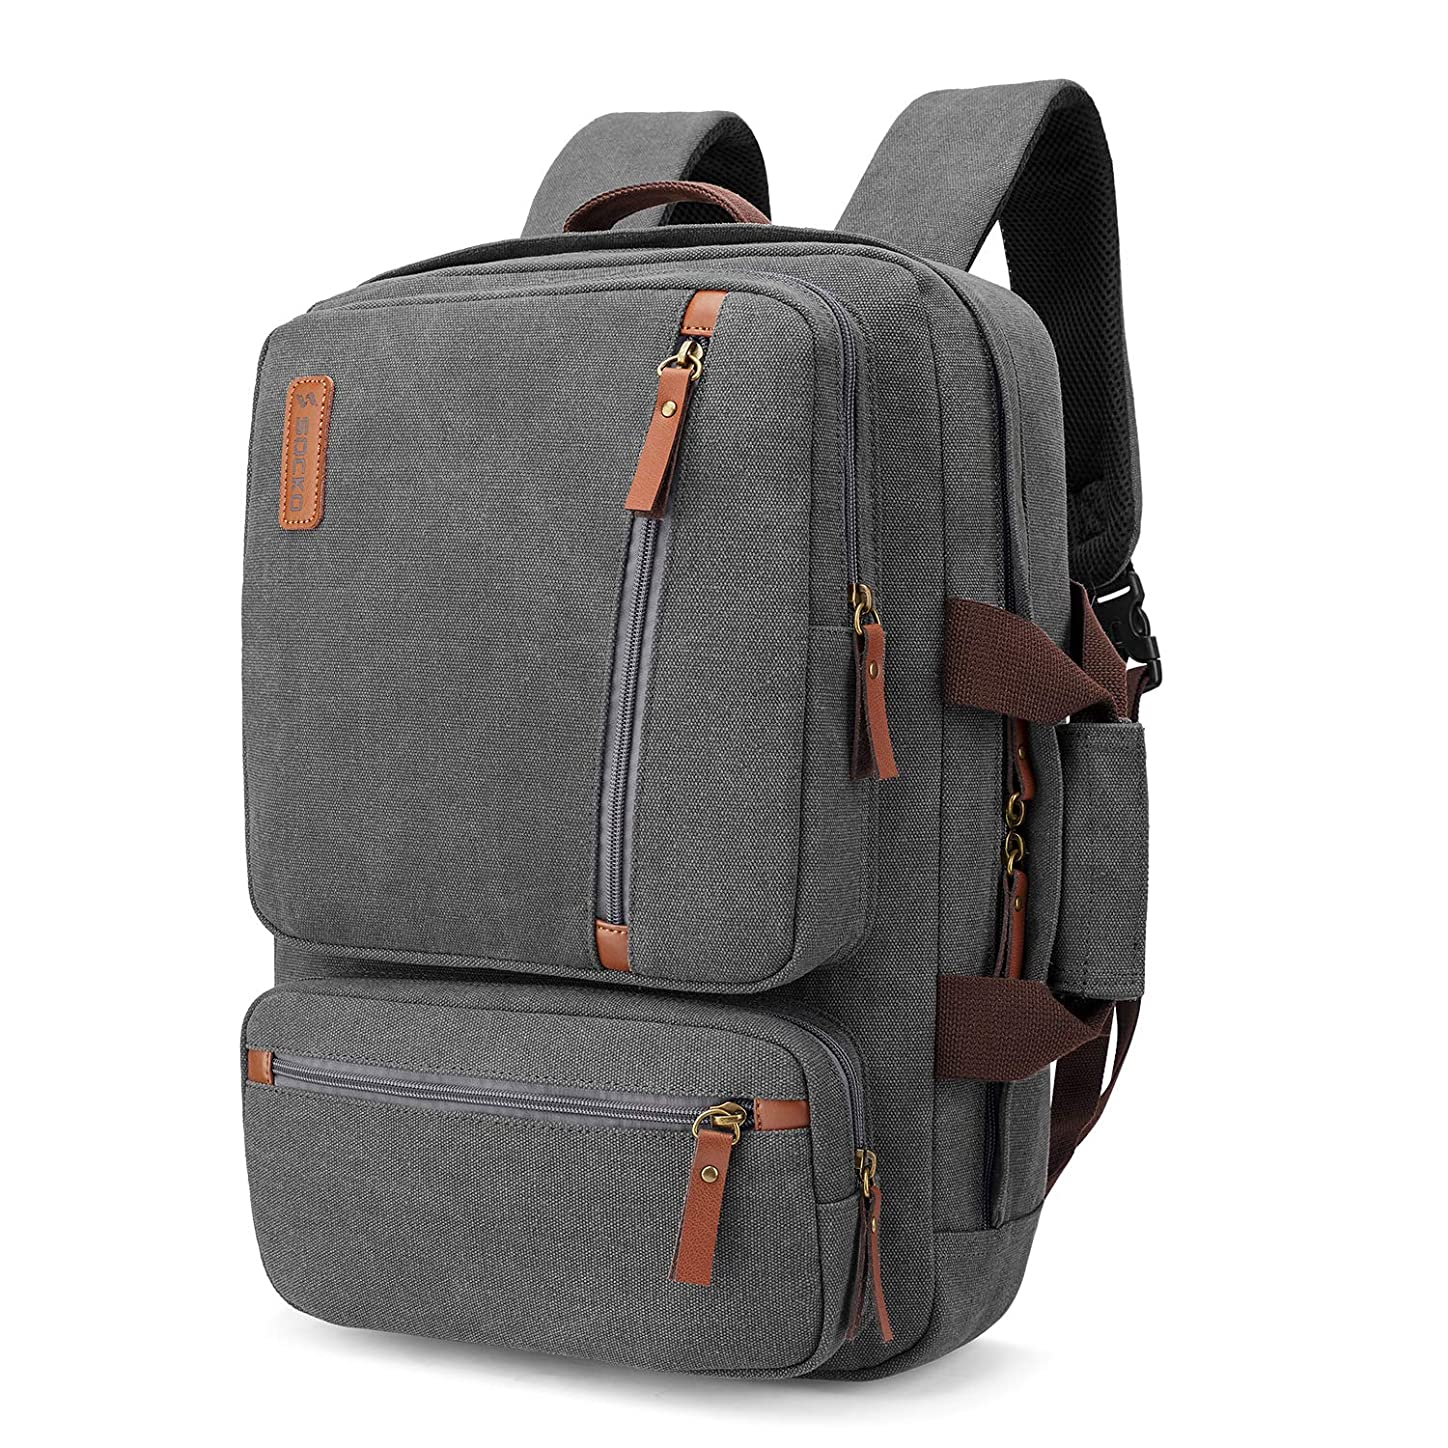 SOCKO Convertible Laptop Backpack Canvas Messenger Bag Shoulder Briefcase Multifunctional Travel Rucksack Hiking Knapsack College Notebook Bag Fits 17.3 Inch Laptops for Men/Women, Gray hskepyd455543